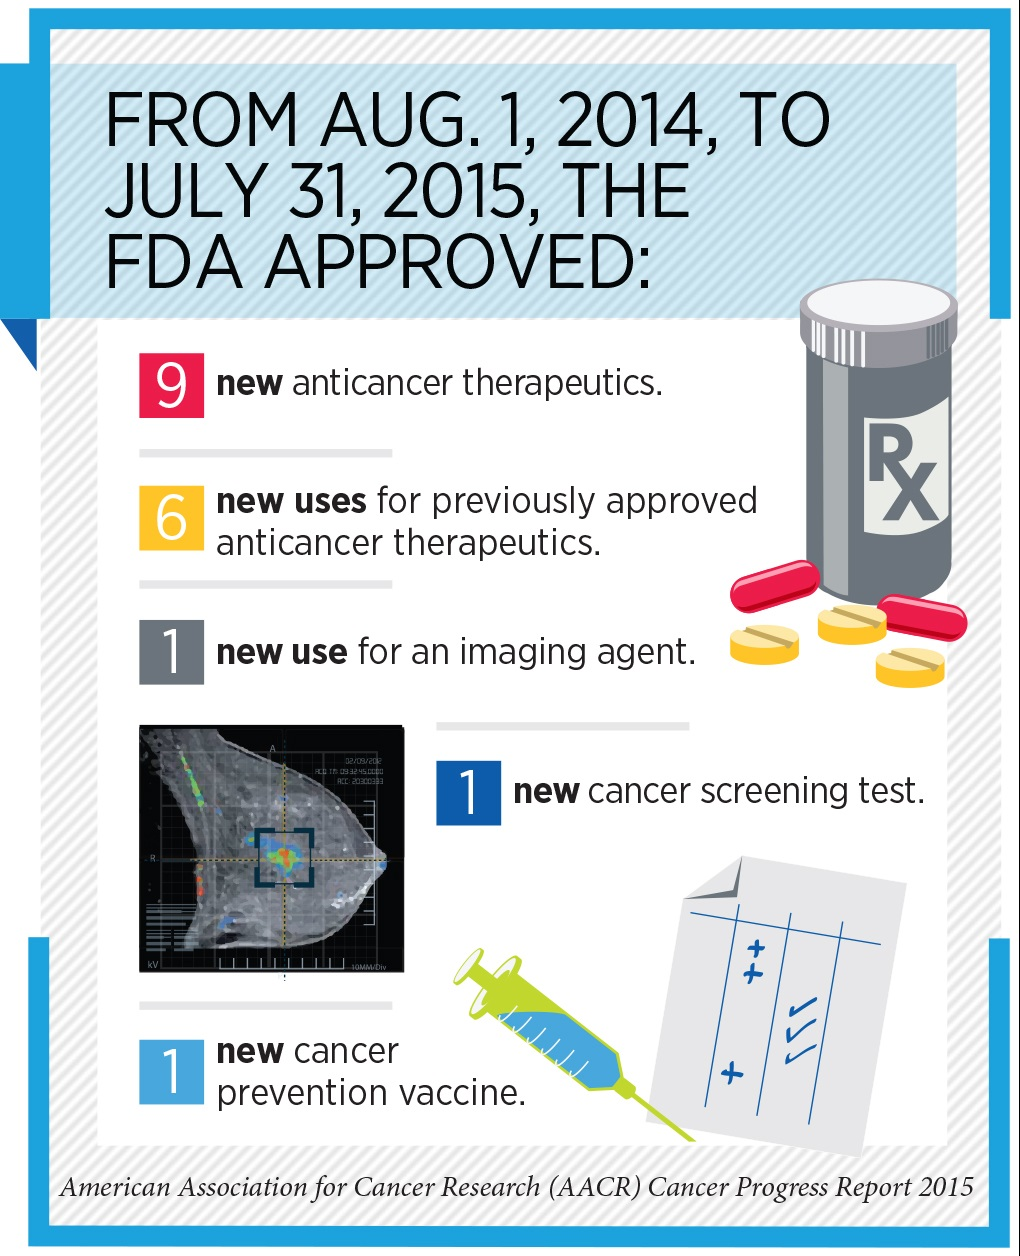 FDA Approvals Between Aug. 1, 2014, and July 31, 2015